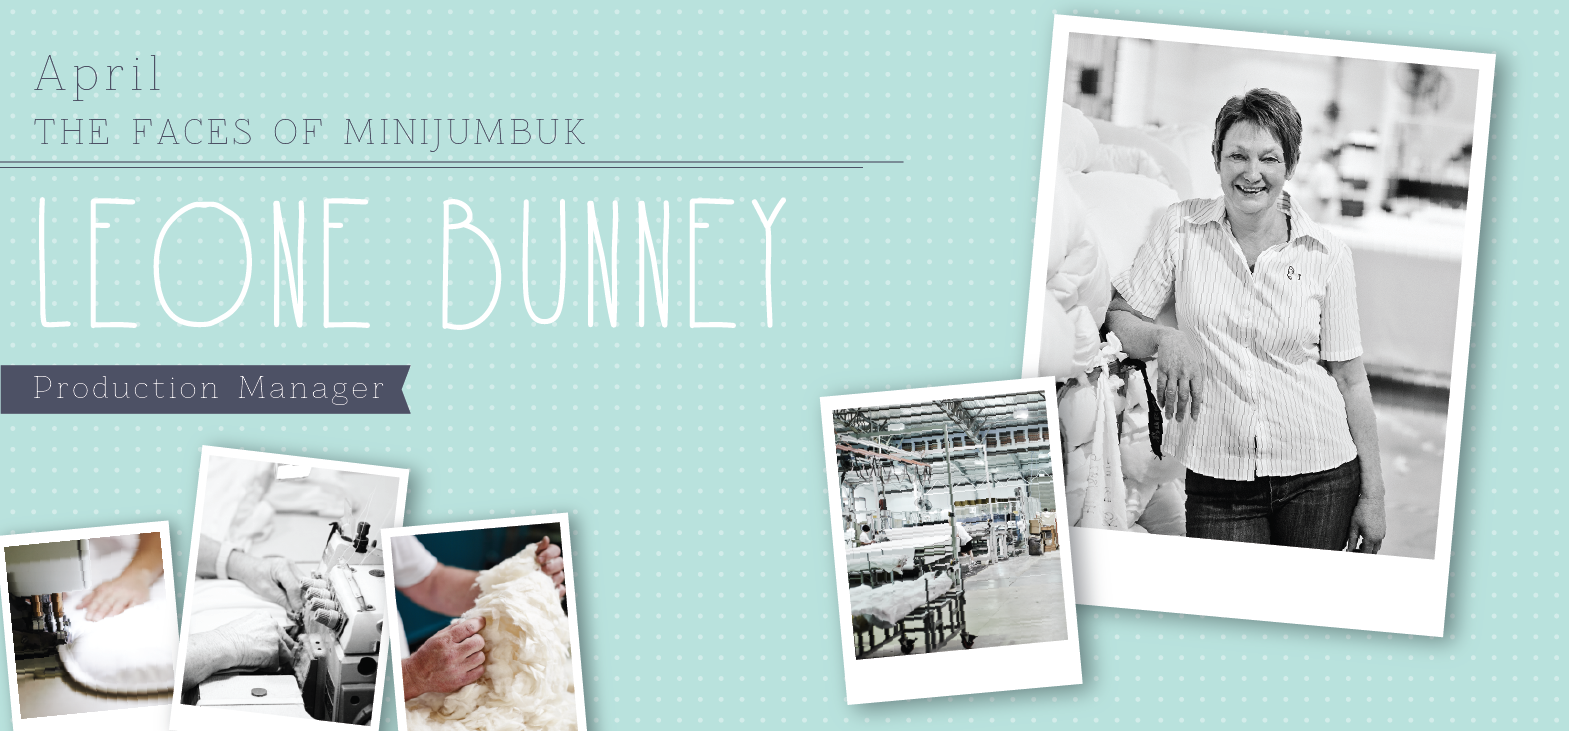 Leone Bunney is MiniJumbuk's handy Production Manager. Read more about Leone and her role at MiniJumbuk on website.